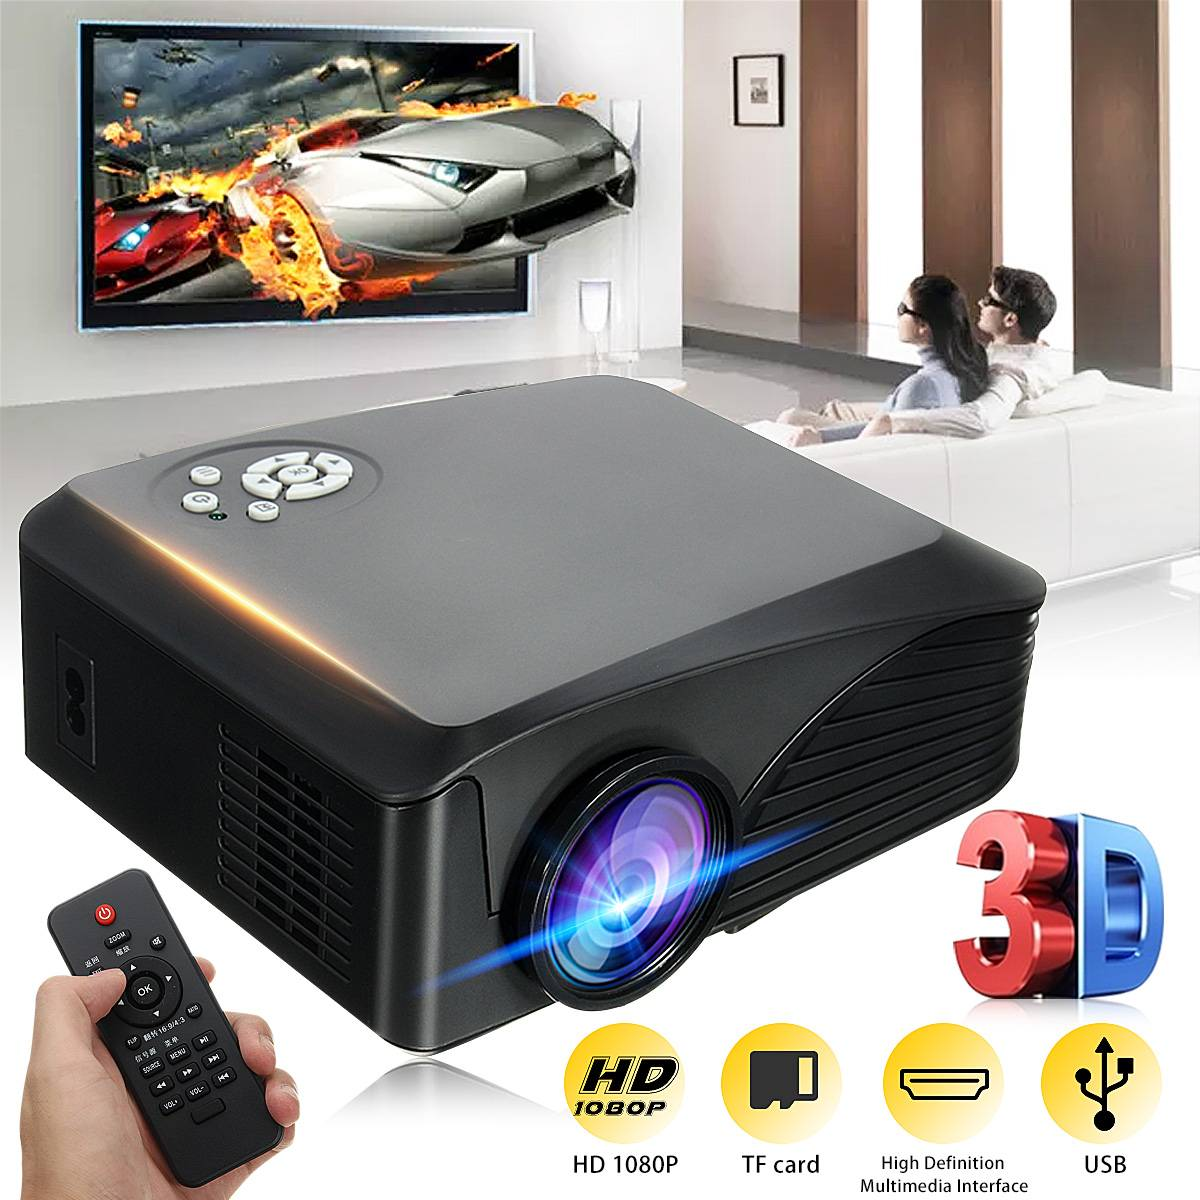 LEORY BP-M400 1080P HD <font><b>7000</b></font> <font><b>Lumens</b></font> 3D LED Projector Multimedia Cinema Theater USB AV TV image